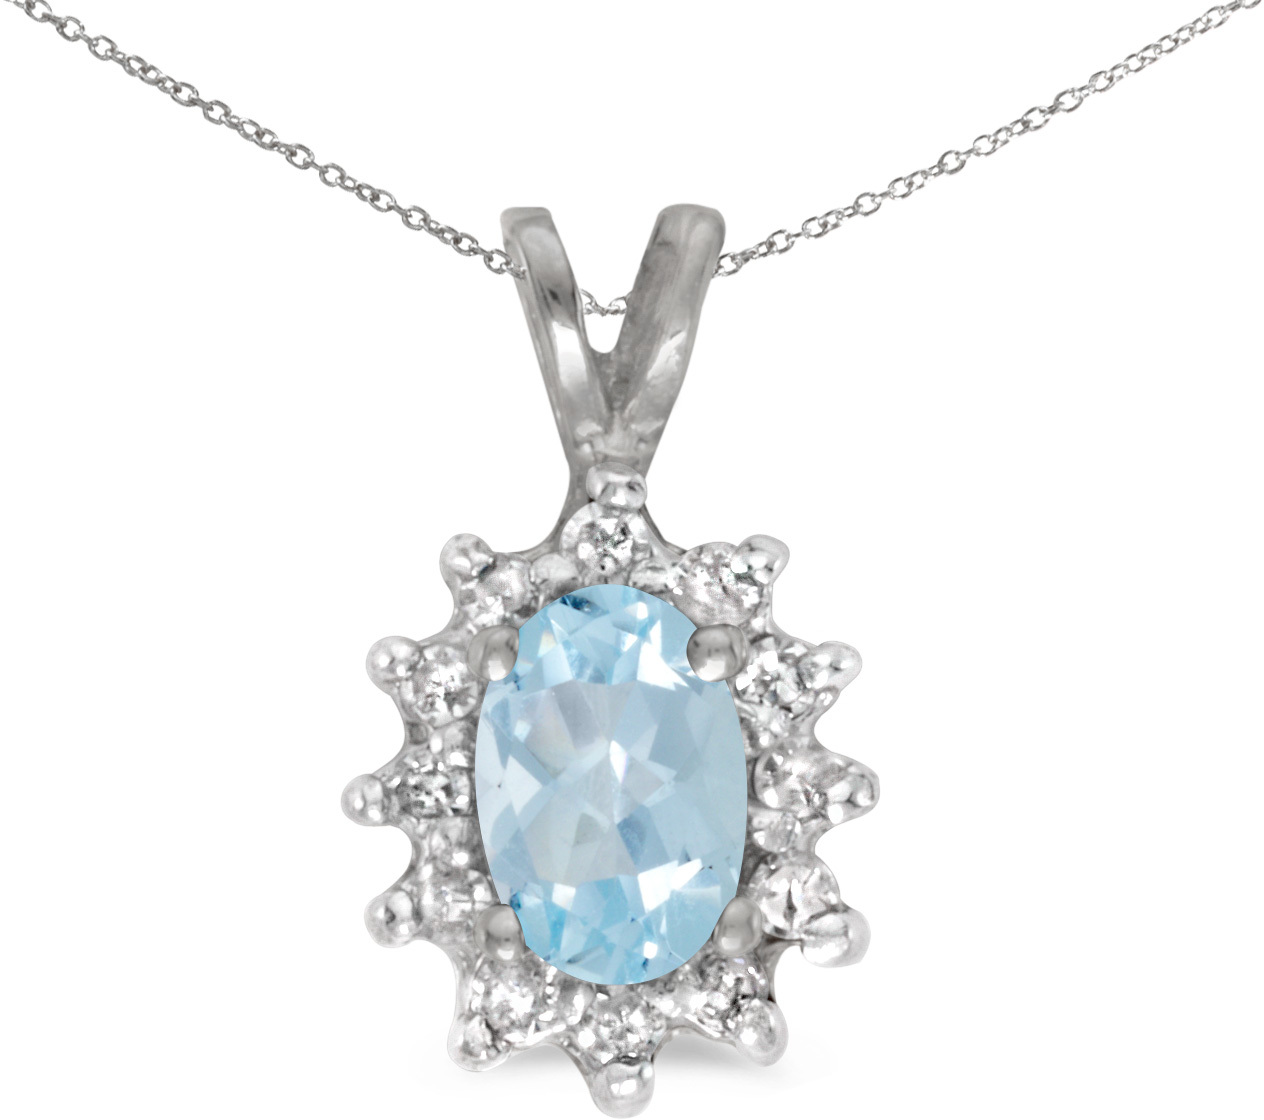 10k White Gold Oval Aquamarine And Diamond Pendant (Chain NOT included)